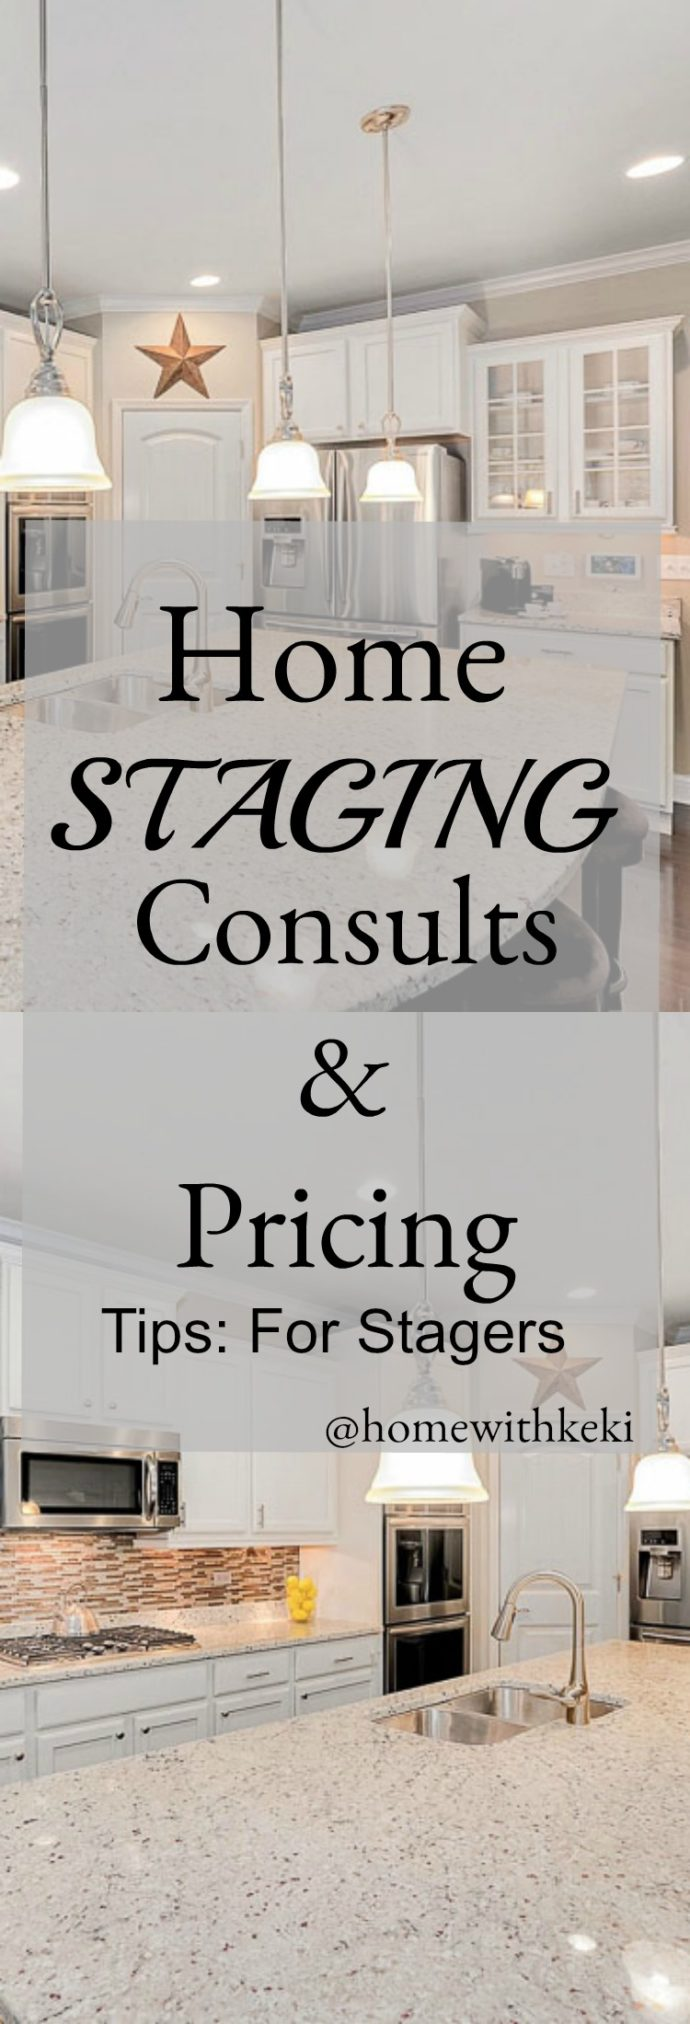 Staging tips: How to price a consultation and different types of consultations to offer www.homewithkeki.com #staginghomes #stagedhomes #entreprenuer #homestage